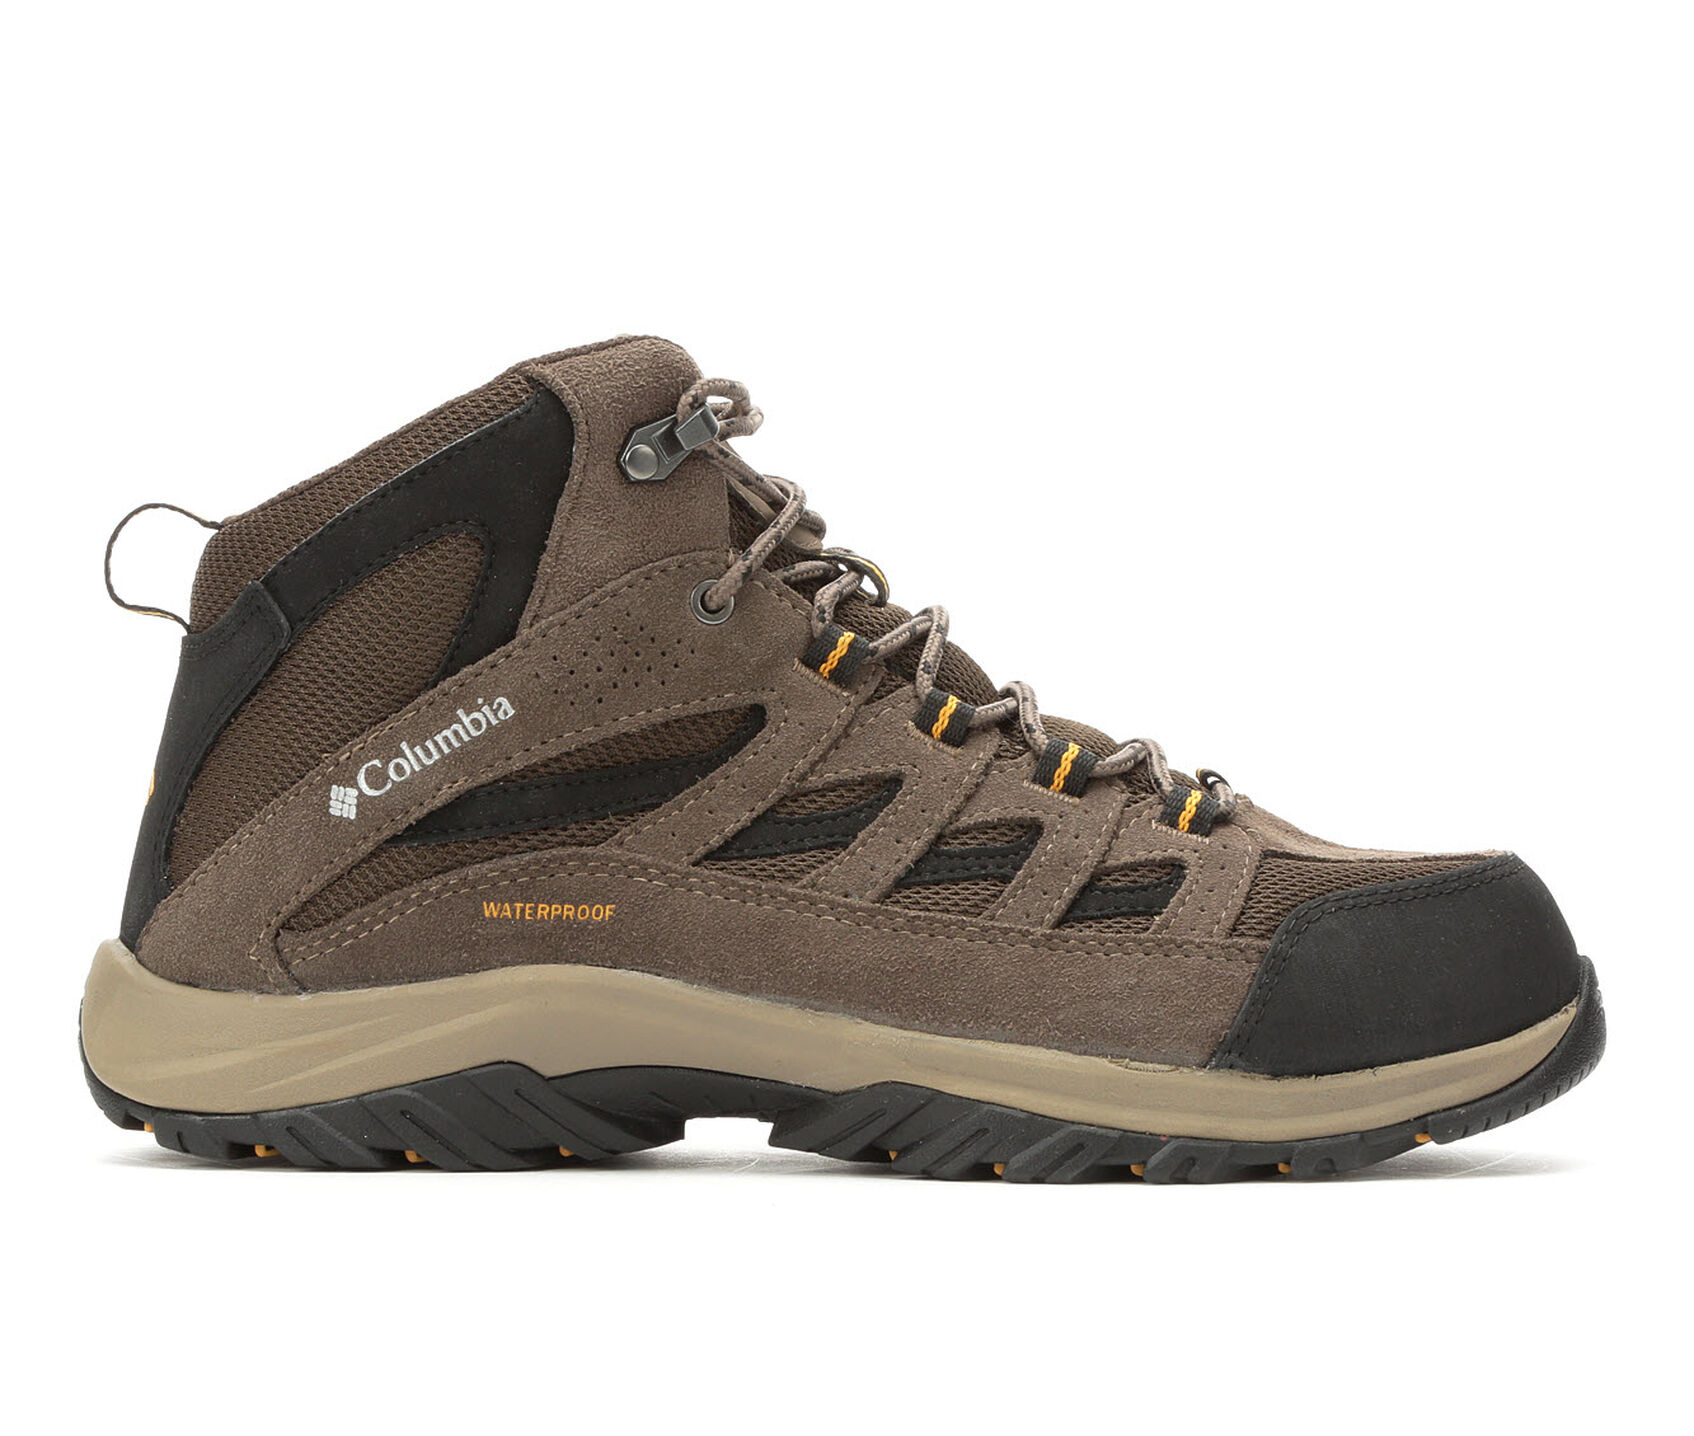 1ce70754784 Men's Columbia Crestwood Mid Waterproof Hiking Boots